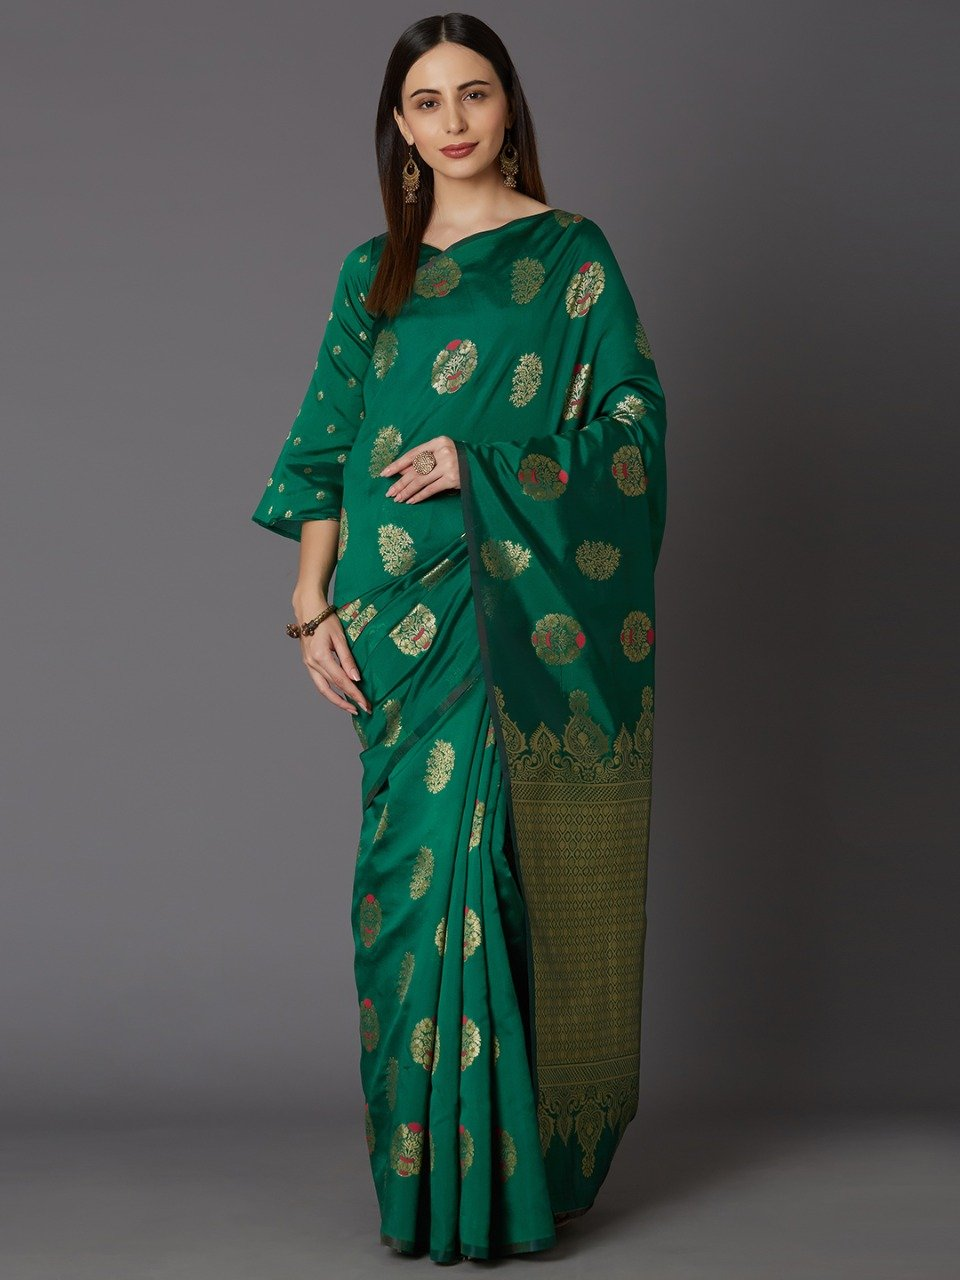 Trendy Green Woven Design Banarasi Saree